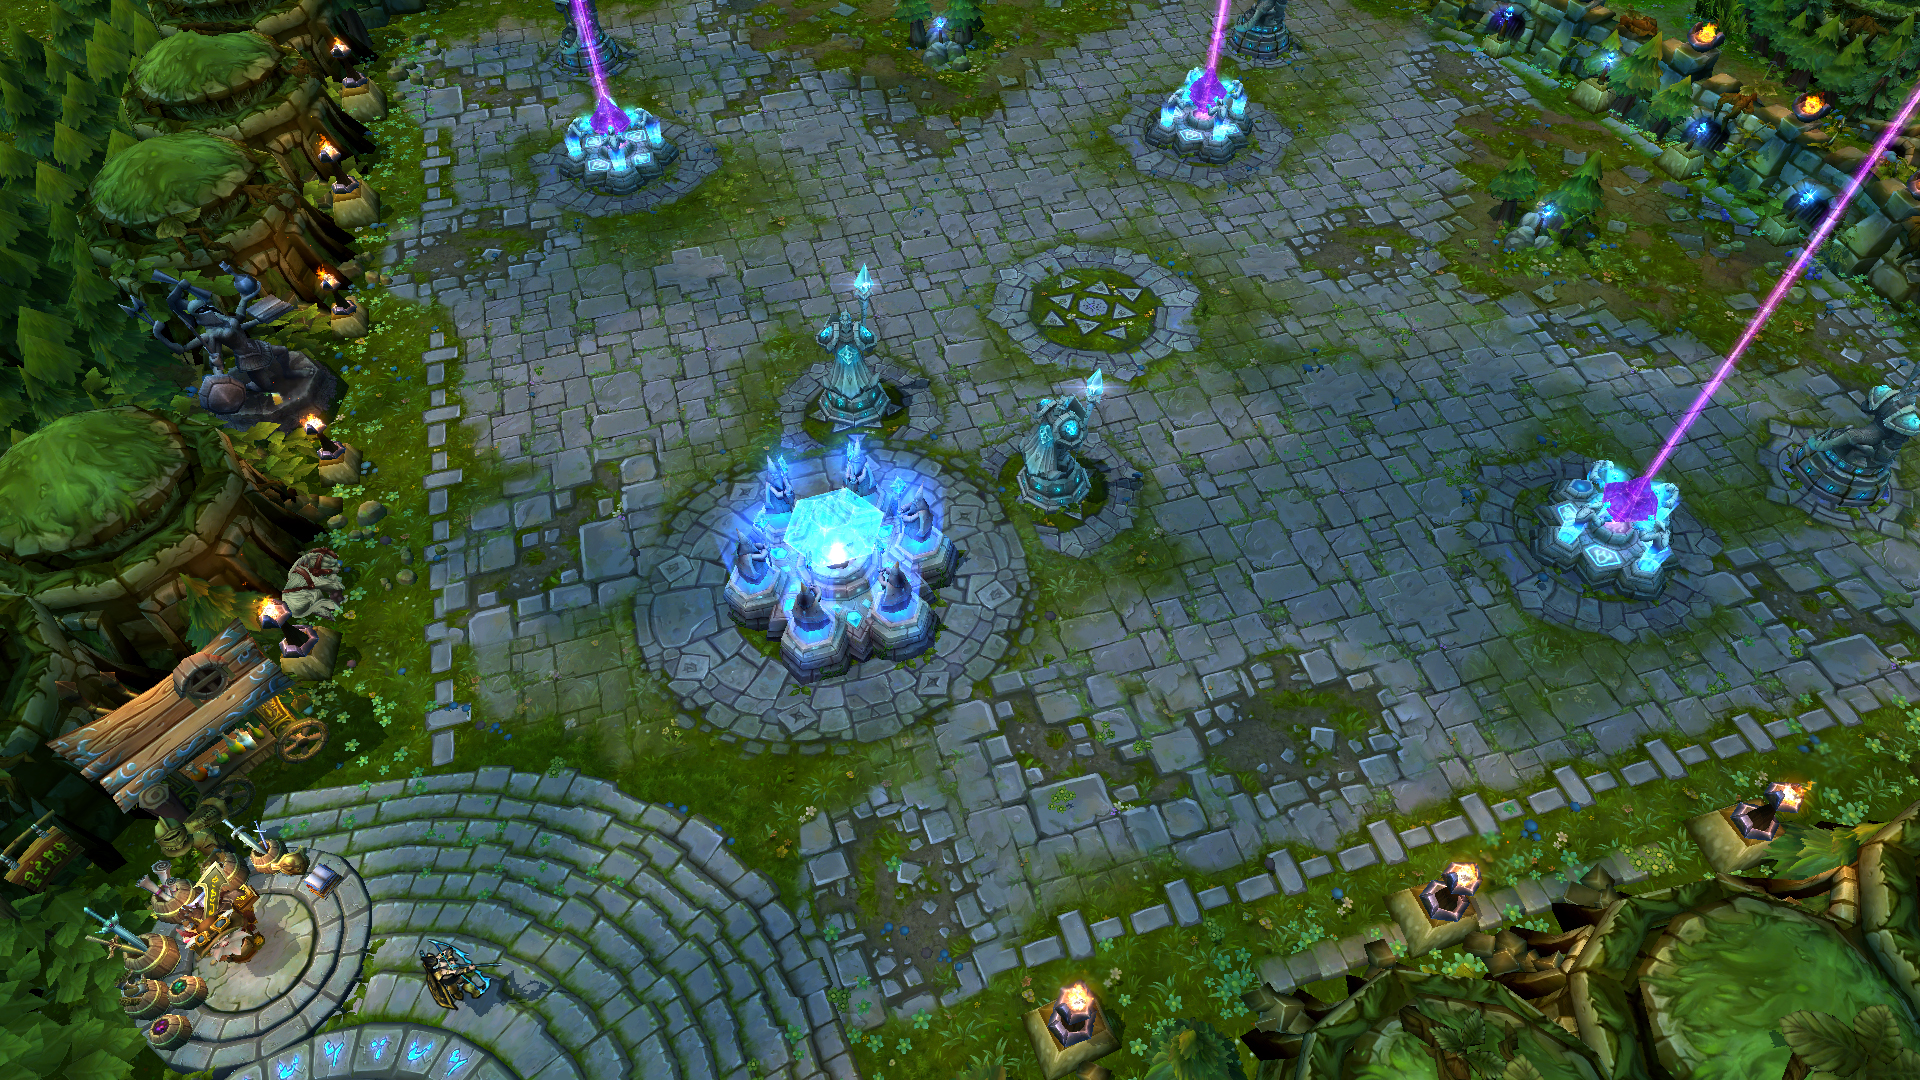 Summoner's Rift - League of Legends (Foto: Divulgação)